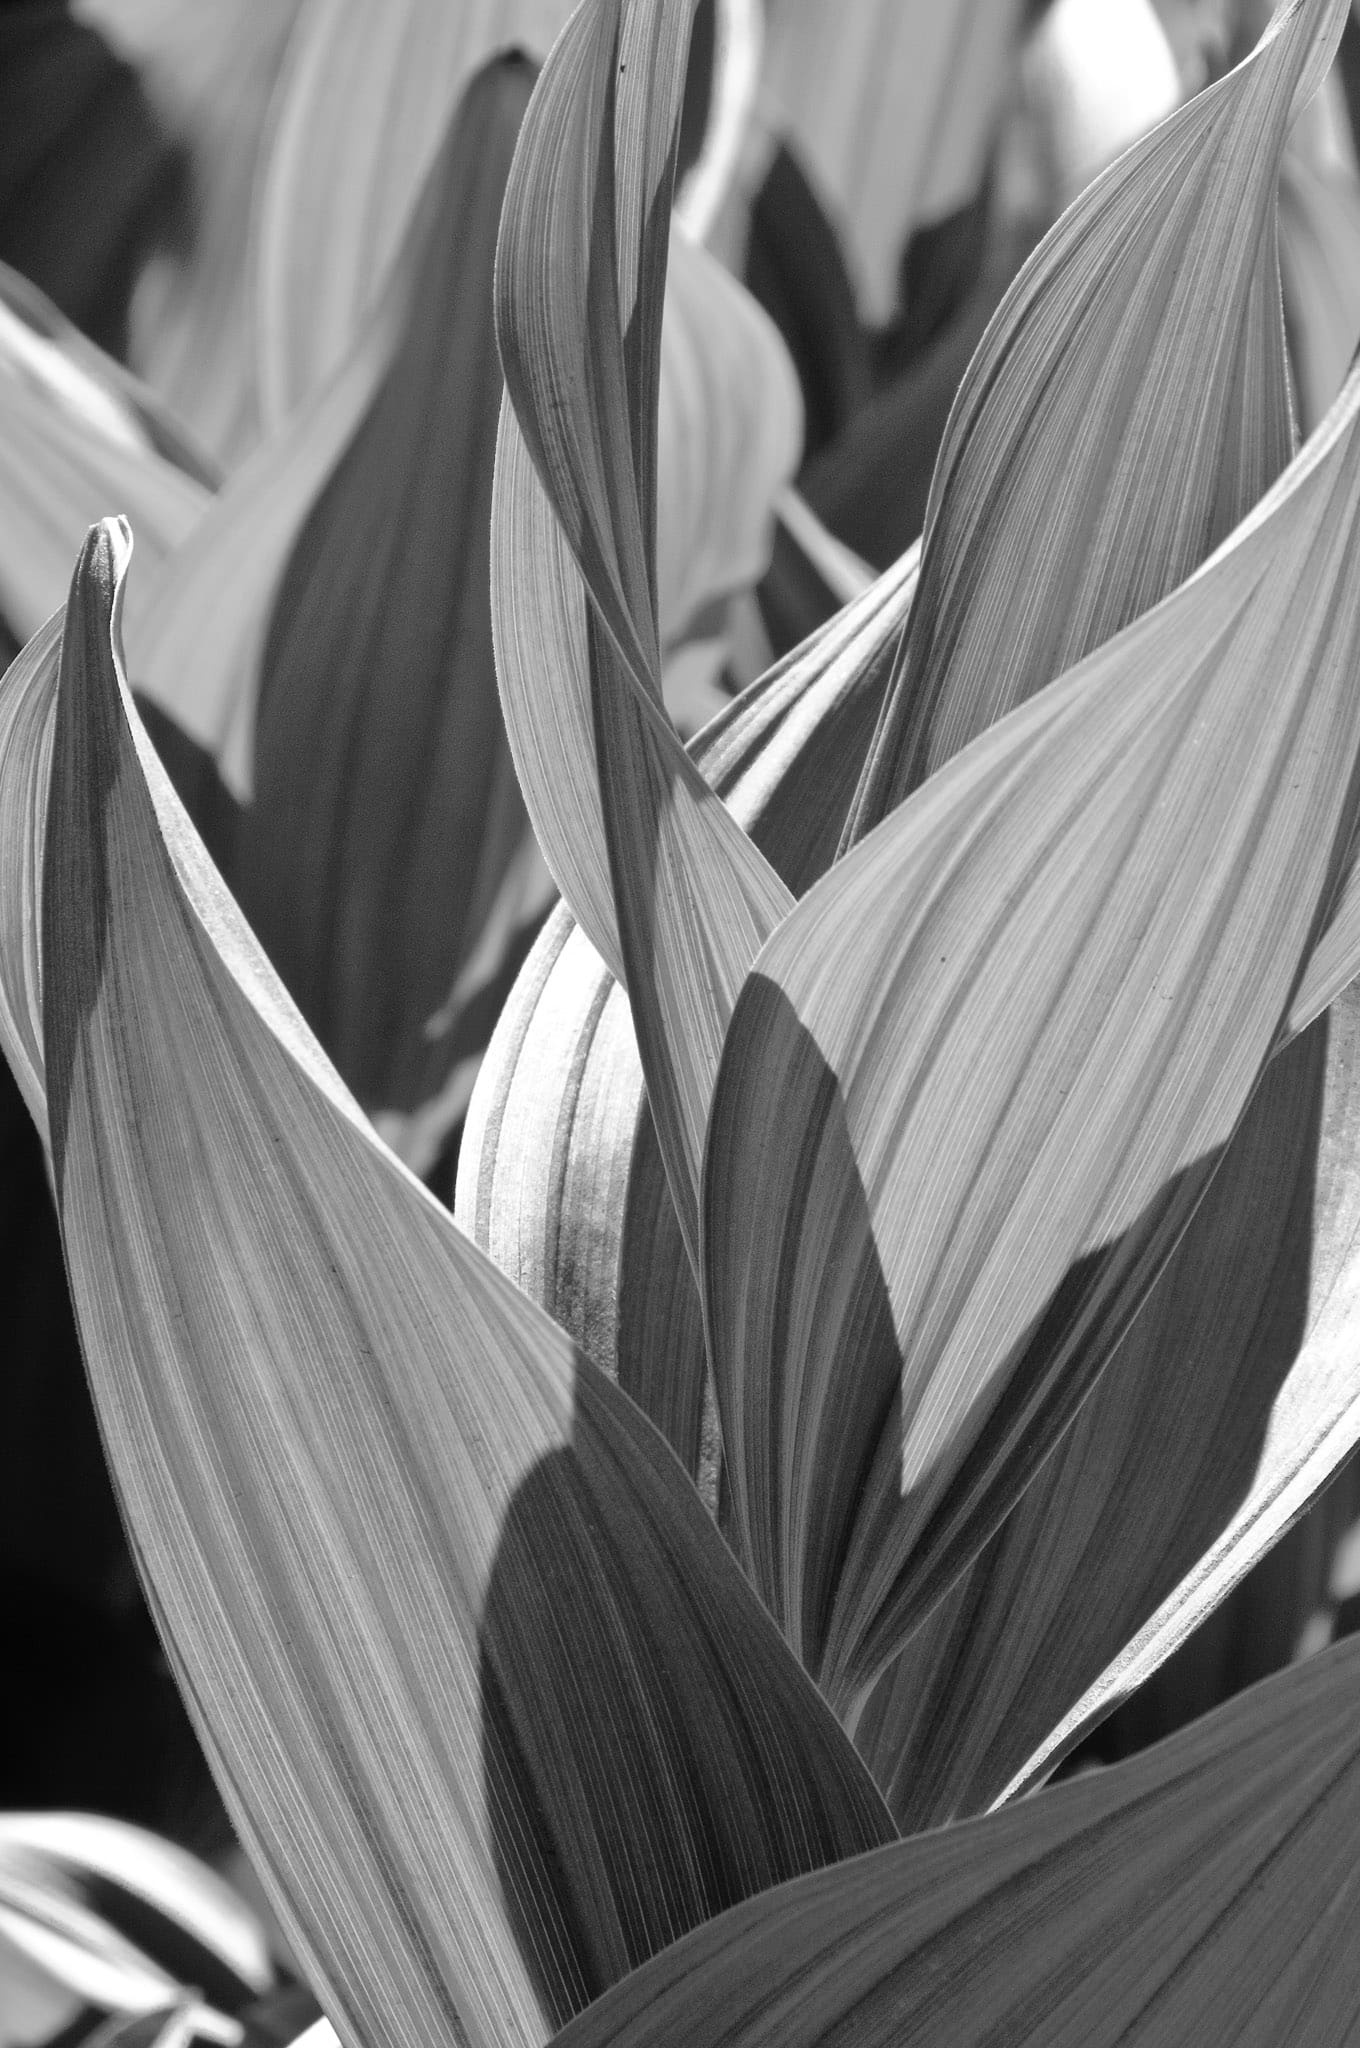 A close-up of the leaves of a Corn Lilly plant, taken along the Brush Creek Road southeast of Mt. Crested Butte, Colorado.